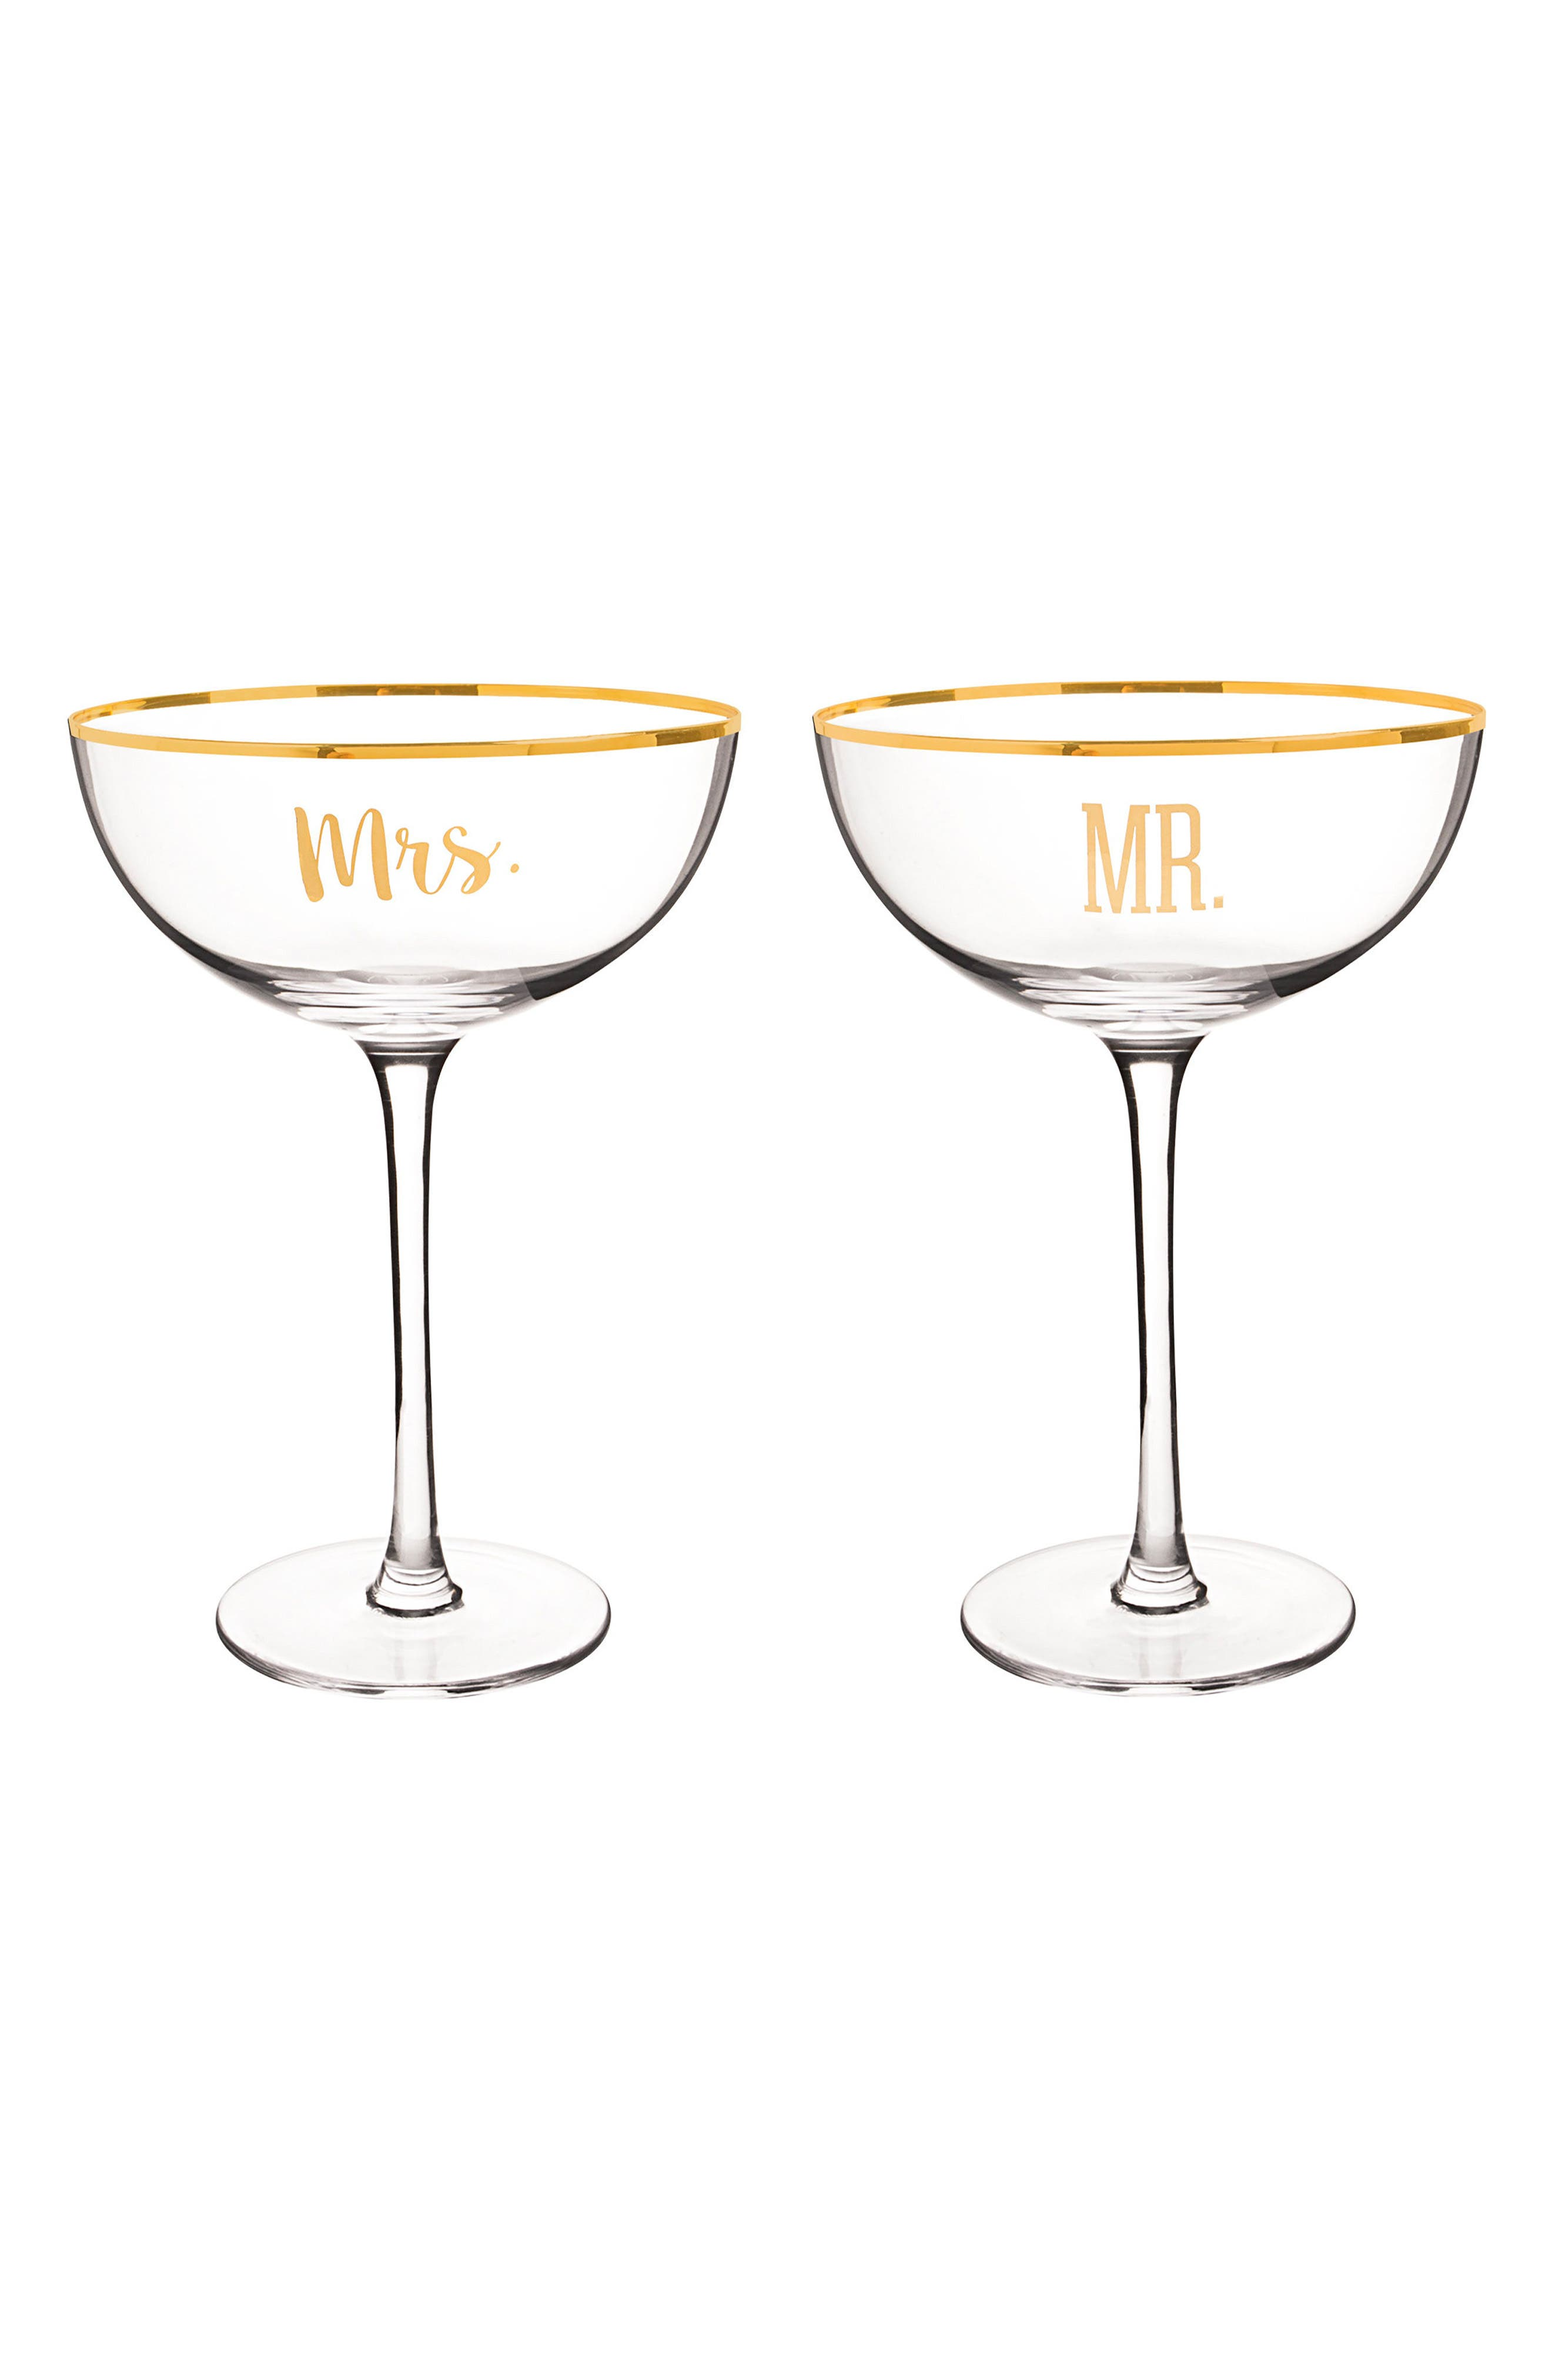 Mr. & Mrs. Set of 2 Champagne Coupe Toasting Glasses,                         Main,                         color, Gold